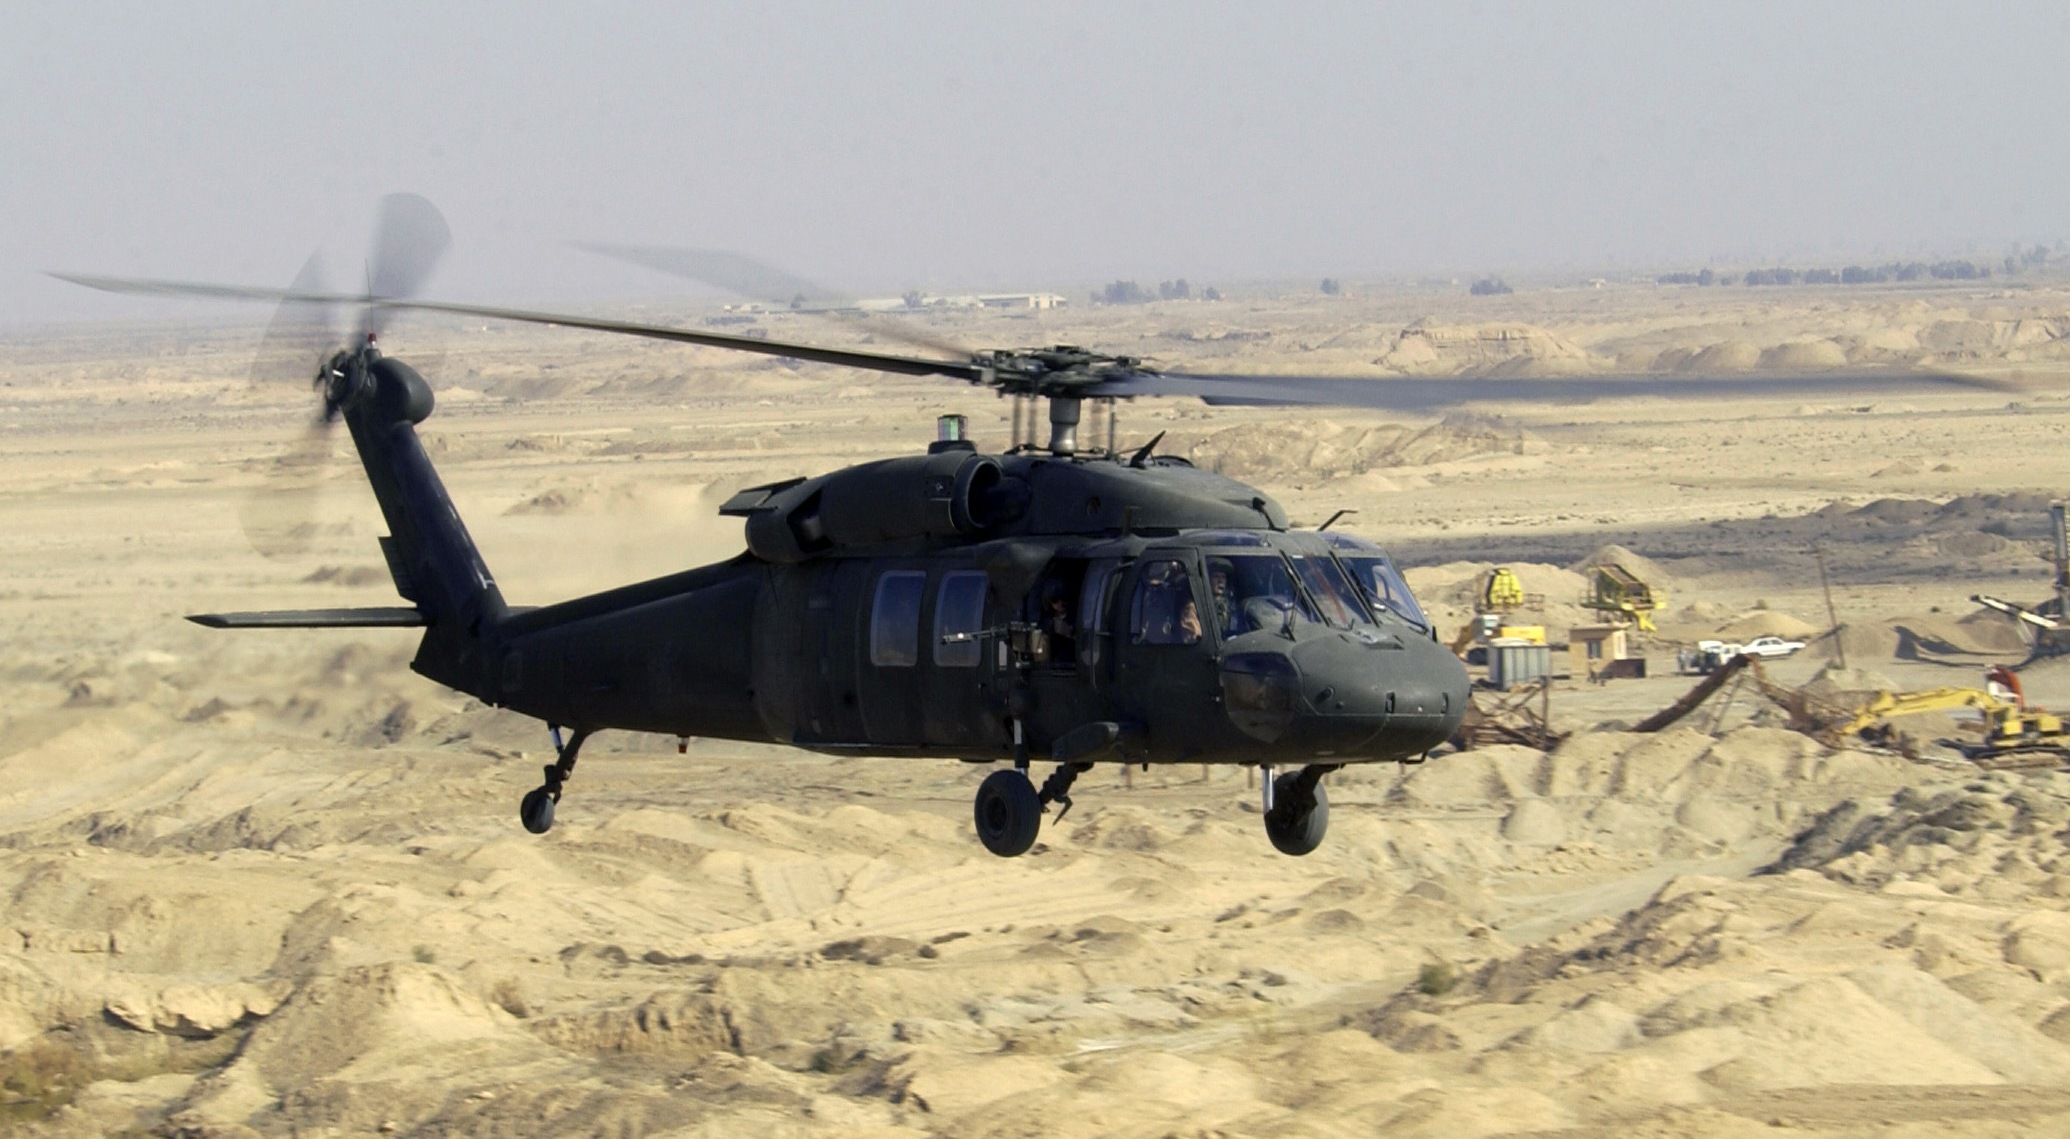 zero dark thirty helicopter with File Blackhawk on Big in addition Osama bin Laden 27s  pound in Abbottabad furthermore File Blackhawk as well Americas First Stealth Helicopter additionally Military Helicopter.